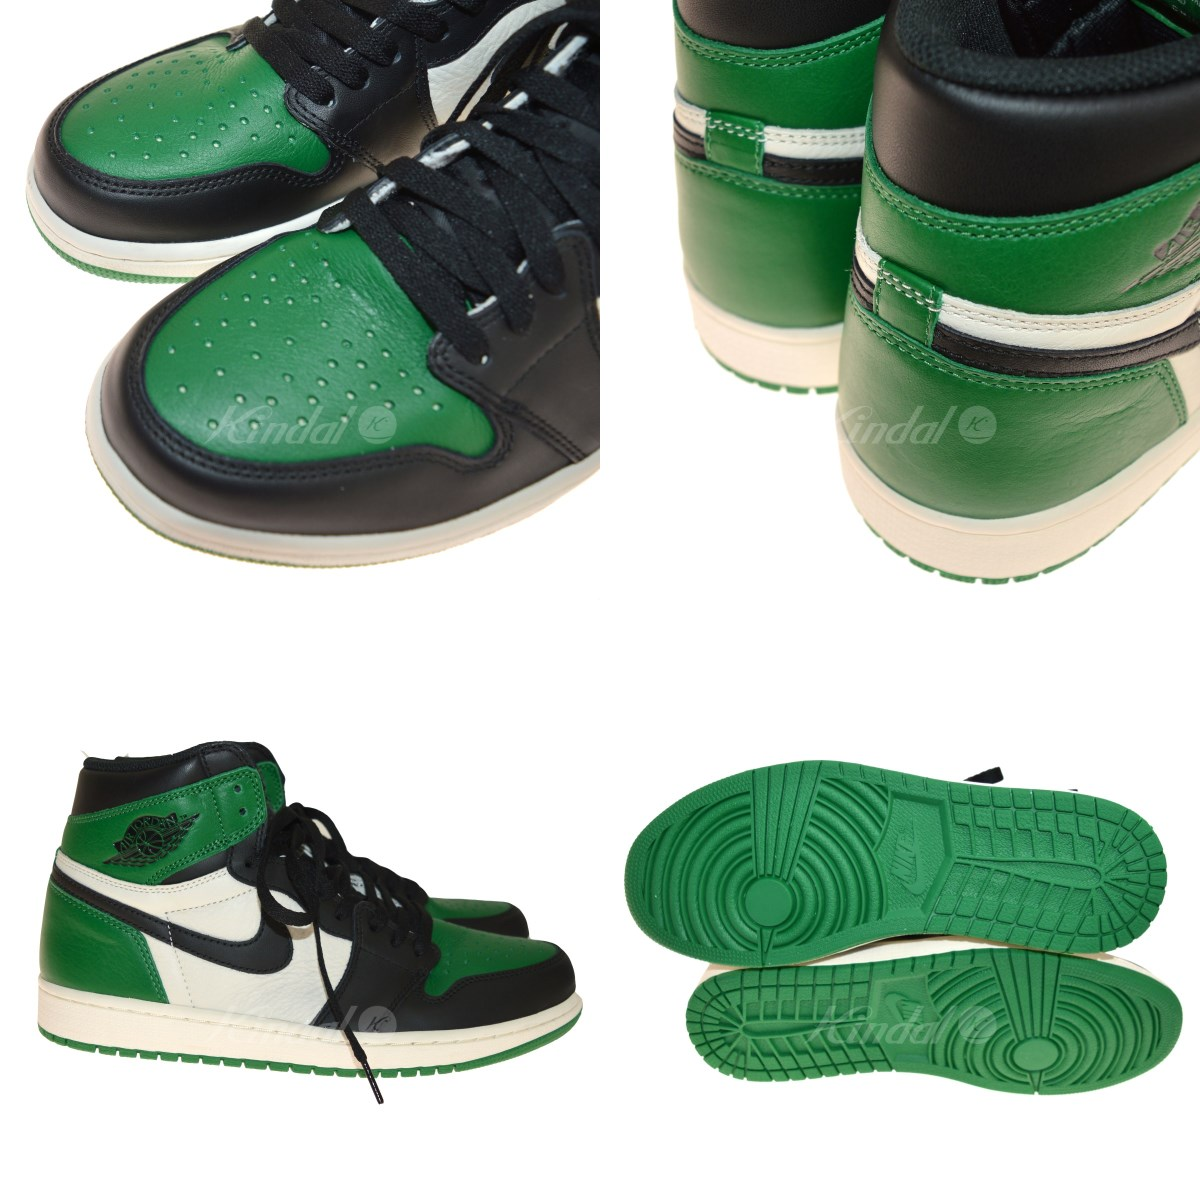 4c22d7c19570 kindal  NIKE AIR JORDAN 1 RETRO HIGH OG PINEGREEN green X white size ...